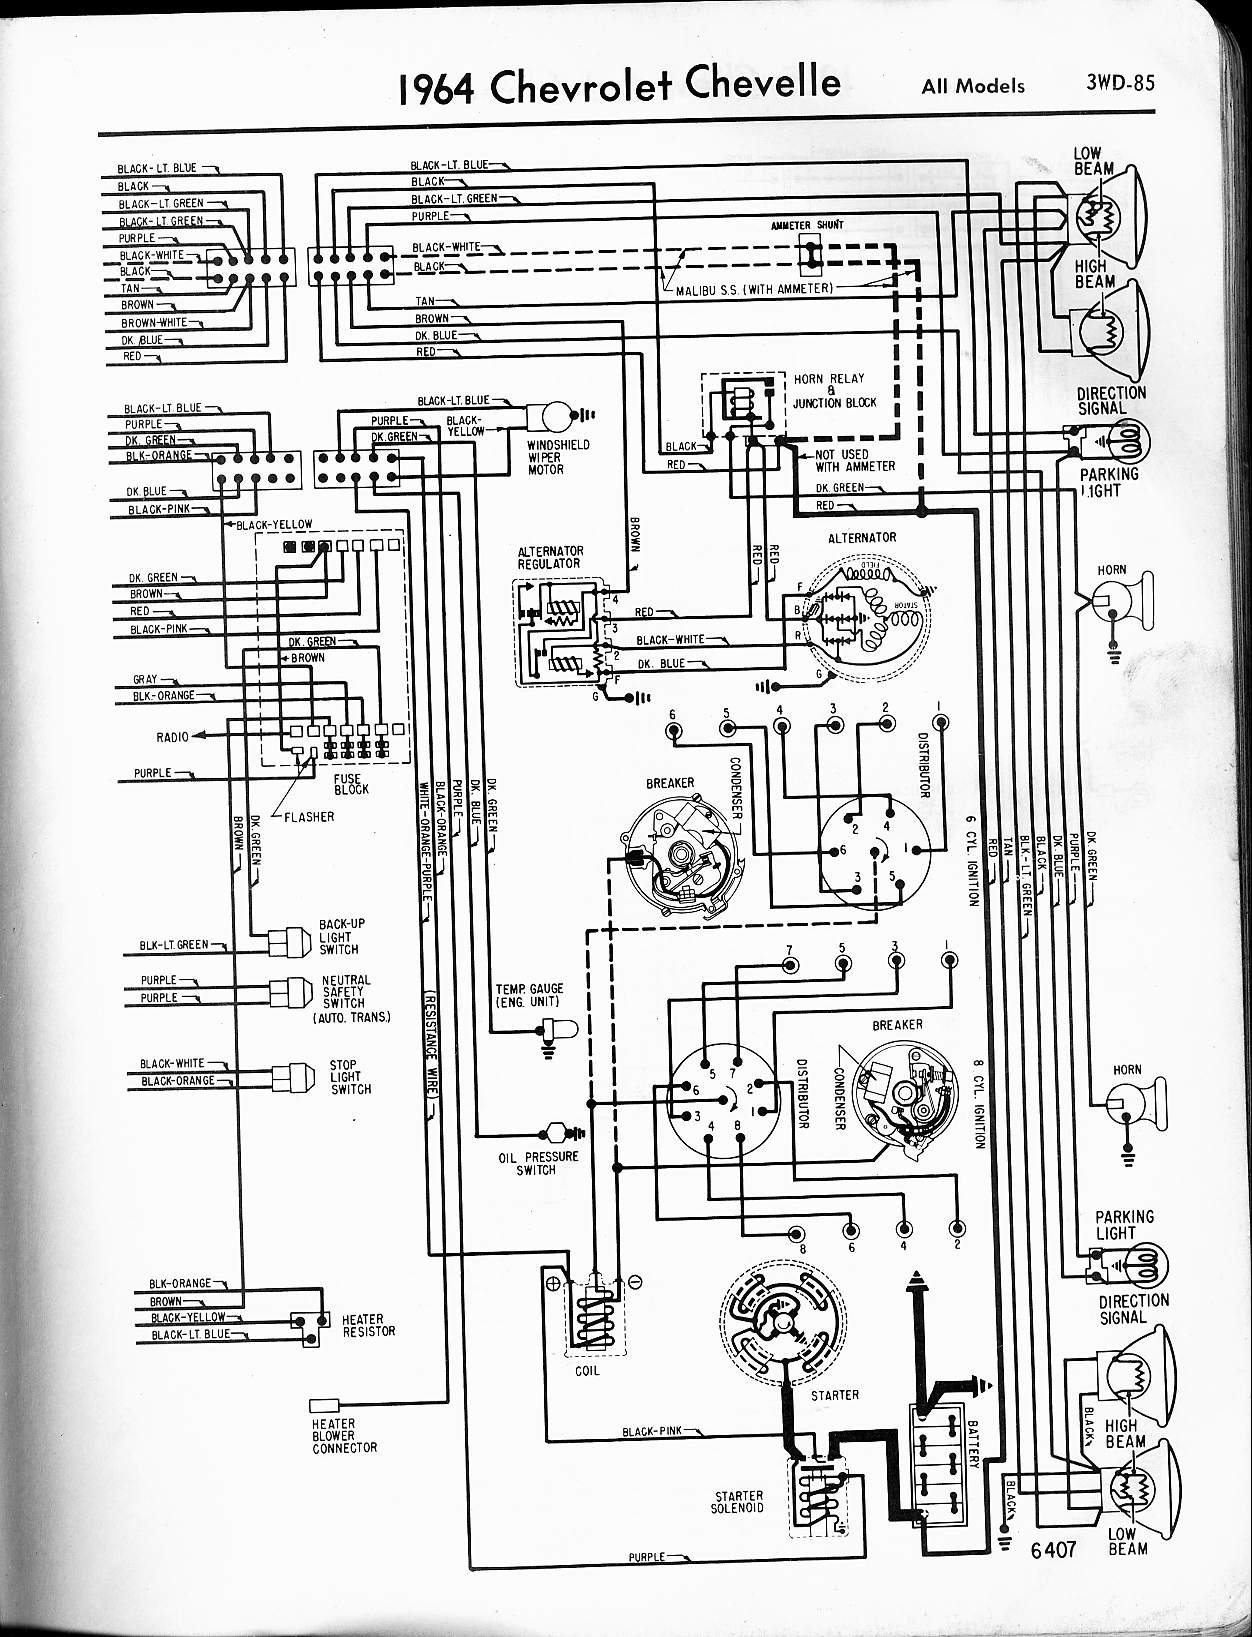 66 gto ignition switch wiring diagram detailed schematics diagram rh  mrskindsclass com 2006 Ford Fuse Panel